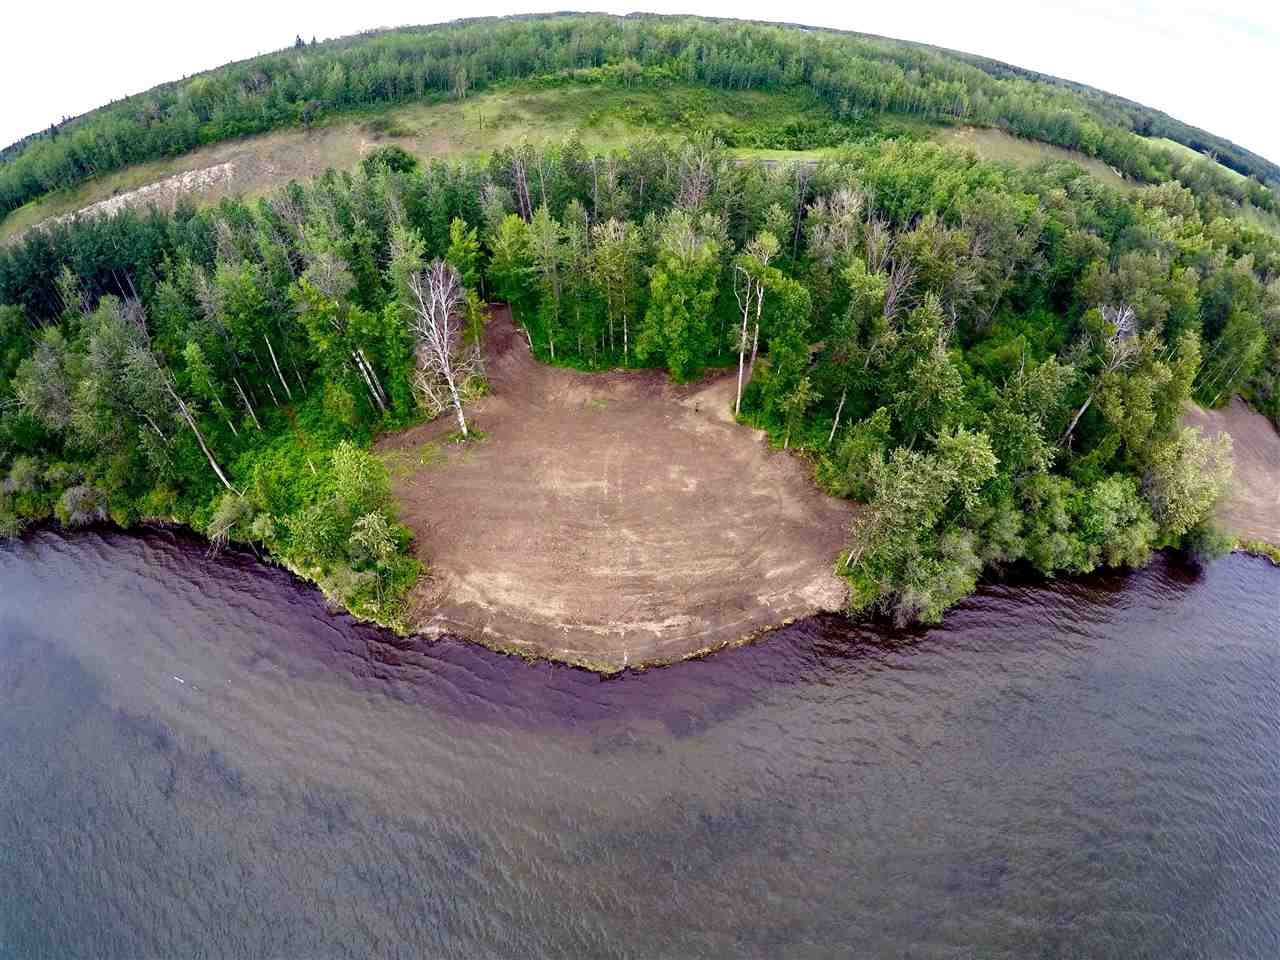 ONCE IN A LIFETIME OPPORTUNITY to own PRIVATE WATERFRONT land on Lake Wabamun next to Seba Beach! This RARE find consists of 5.39 acres and boasts over 1,400 ft of waterfront, a variation of sloped areas and flat areas, winding trails along the lake for the outdoor enthusiast, sandy beach with Riparian Rights to the water breathtaking Southwest waterfront exposure to enjoy the sunsets, and a plethora of trees for privacy. Located a short 45-mintues drive West of Edmonton, this property is a spectacular building site!